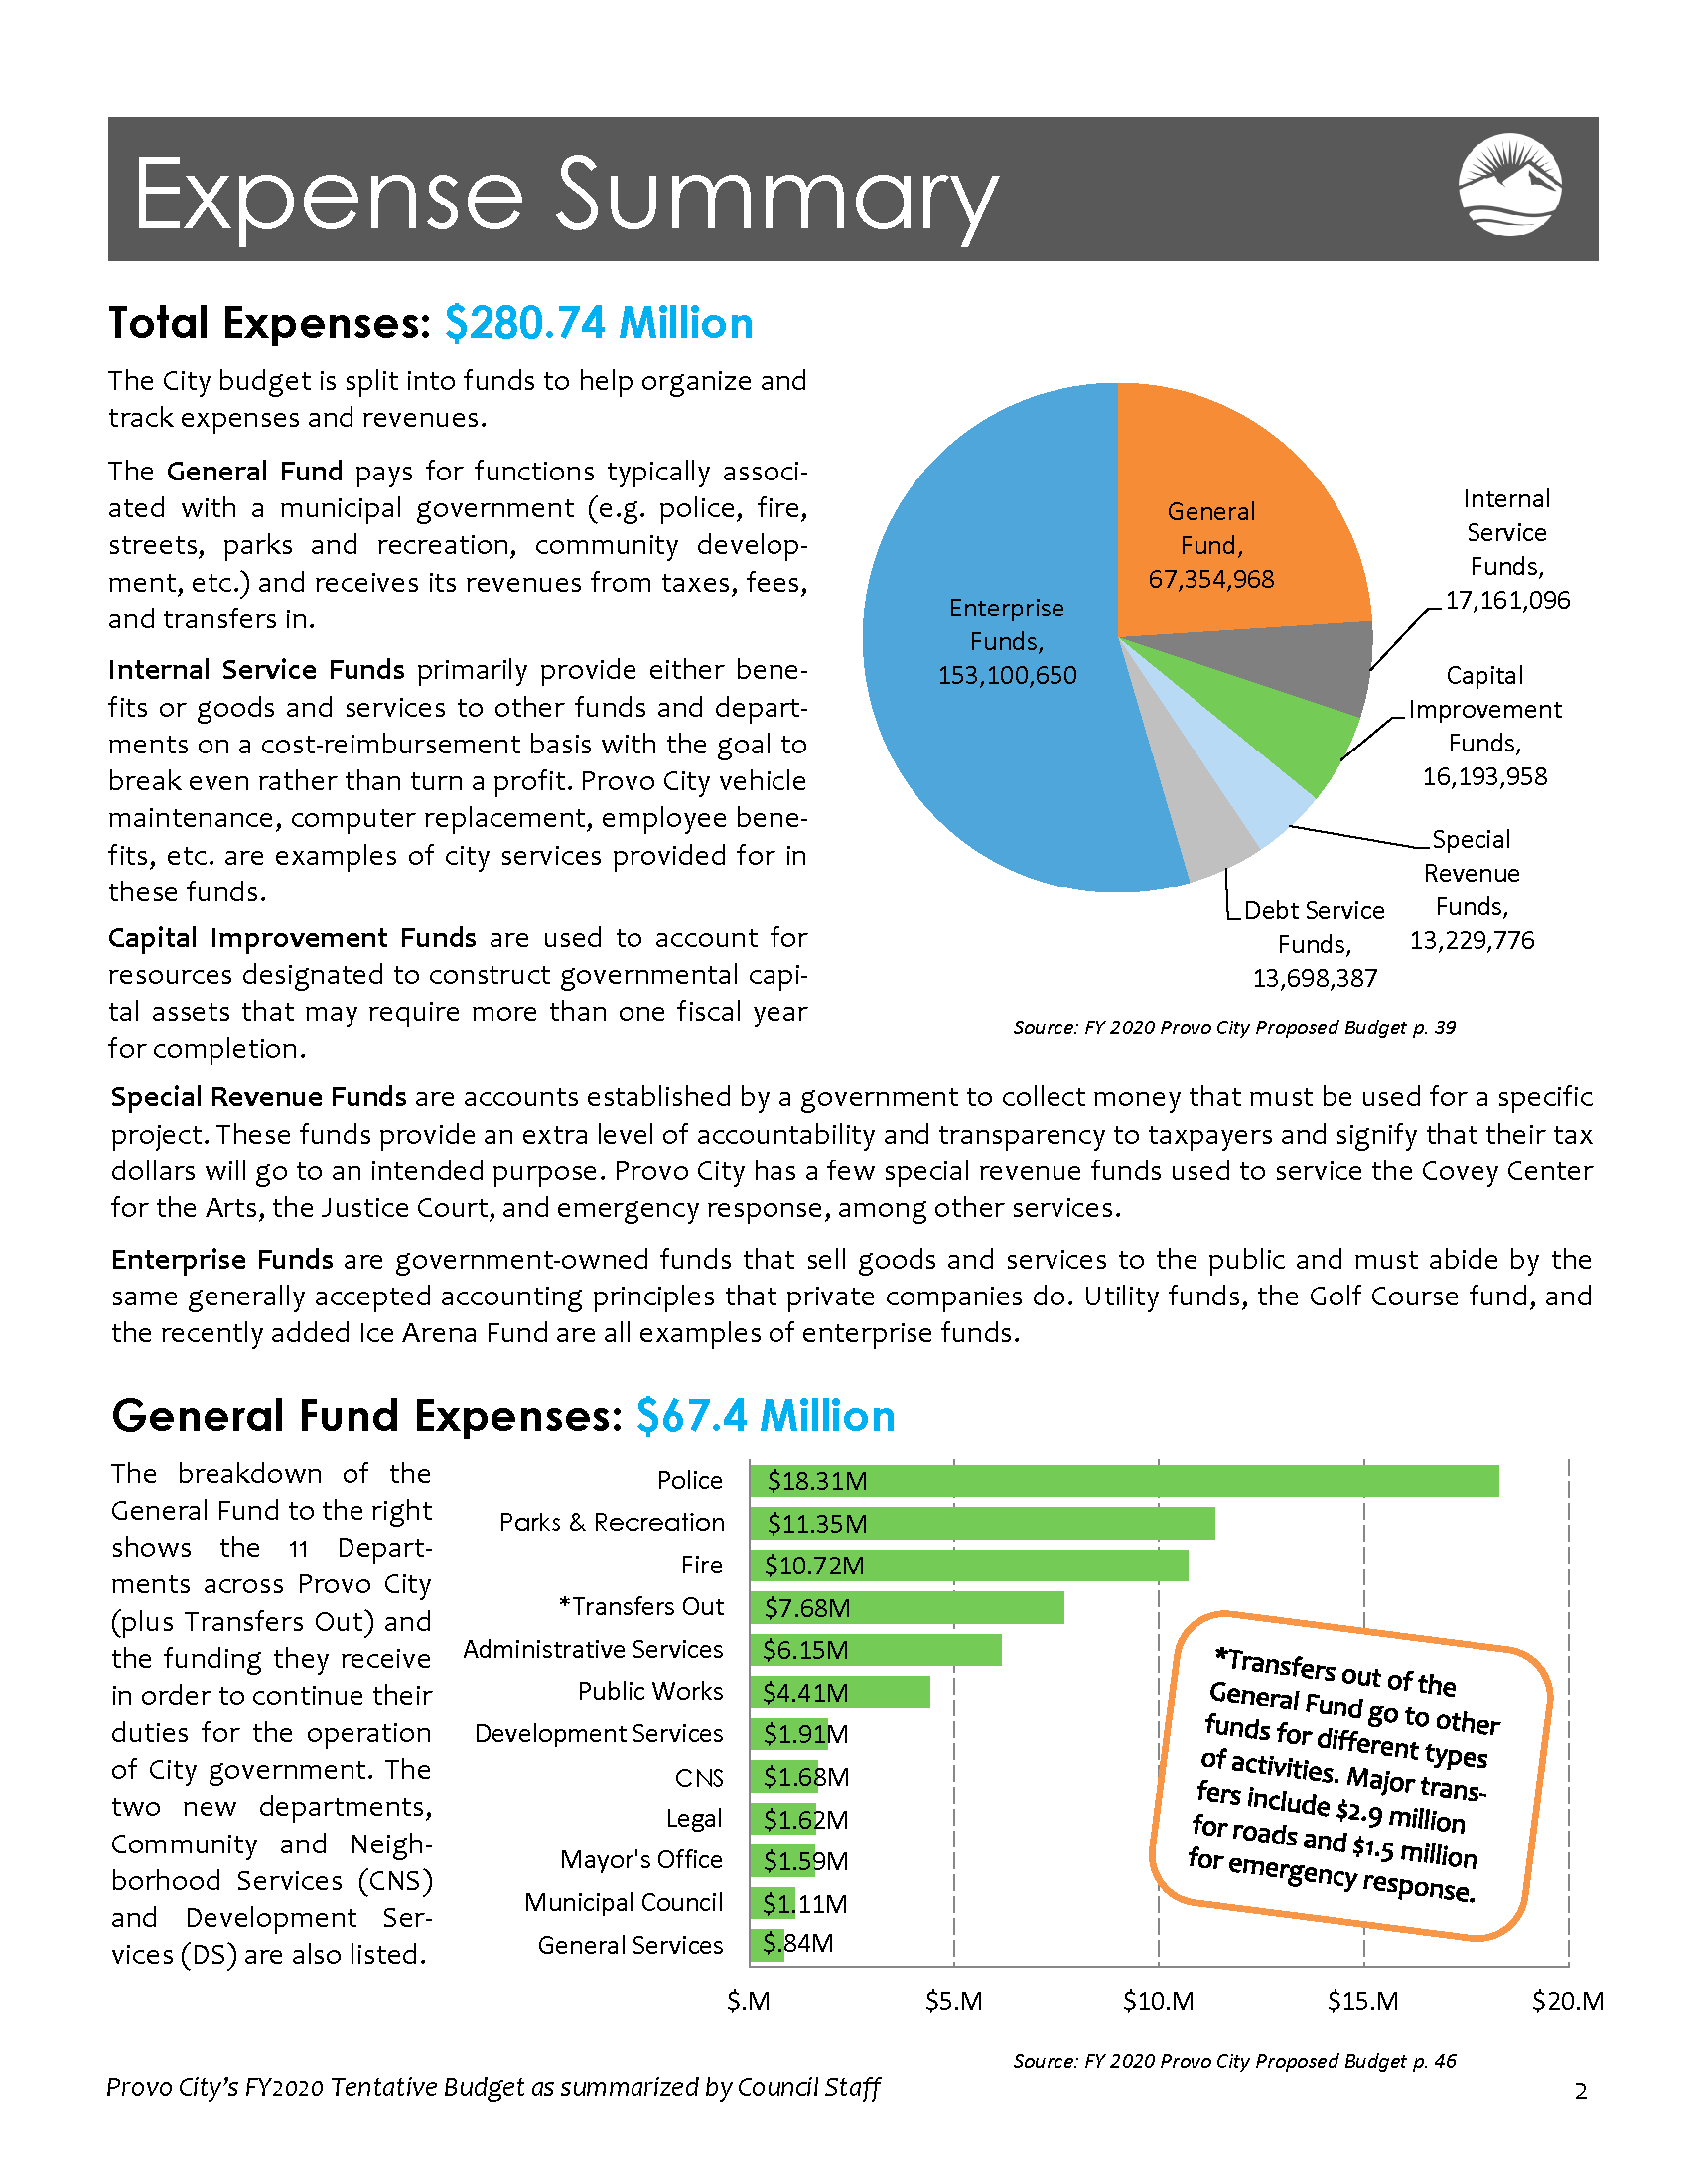 citizens budget page 2